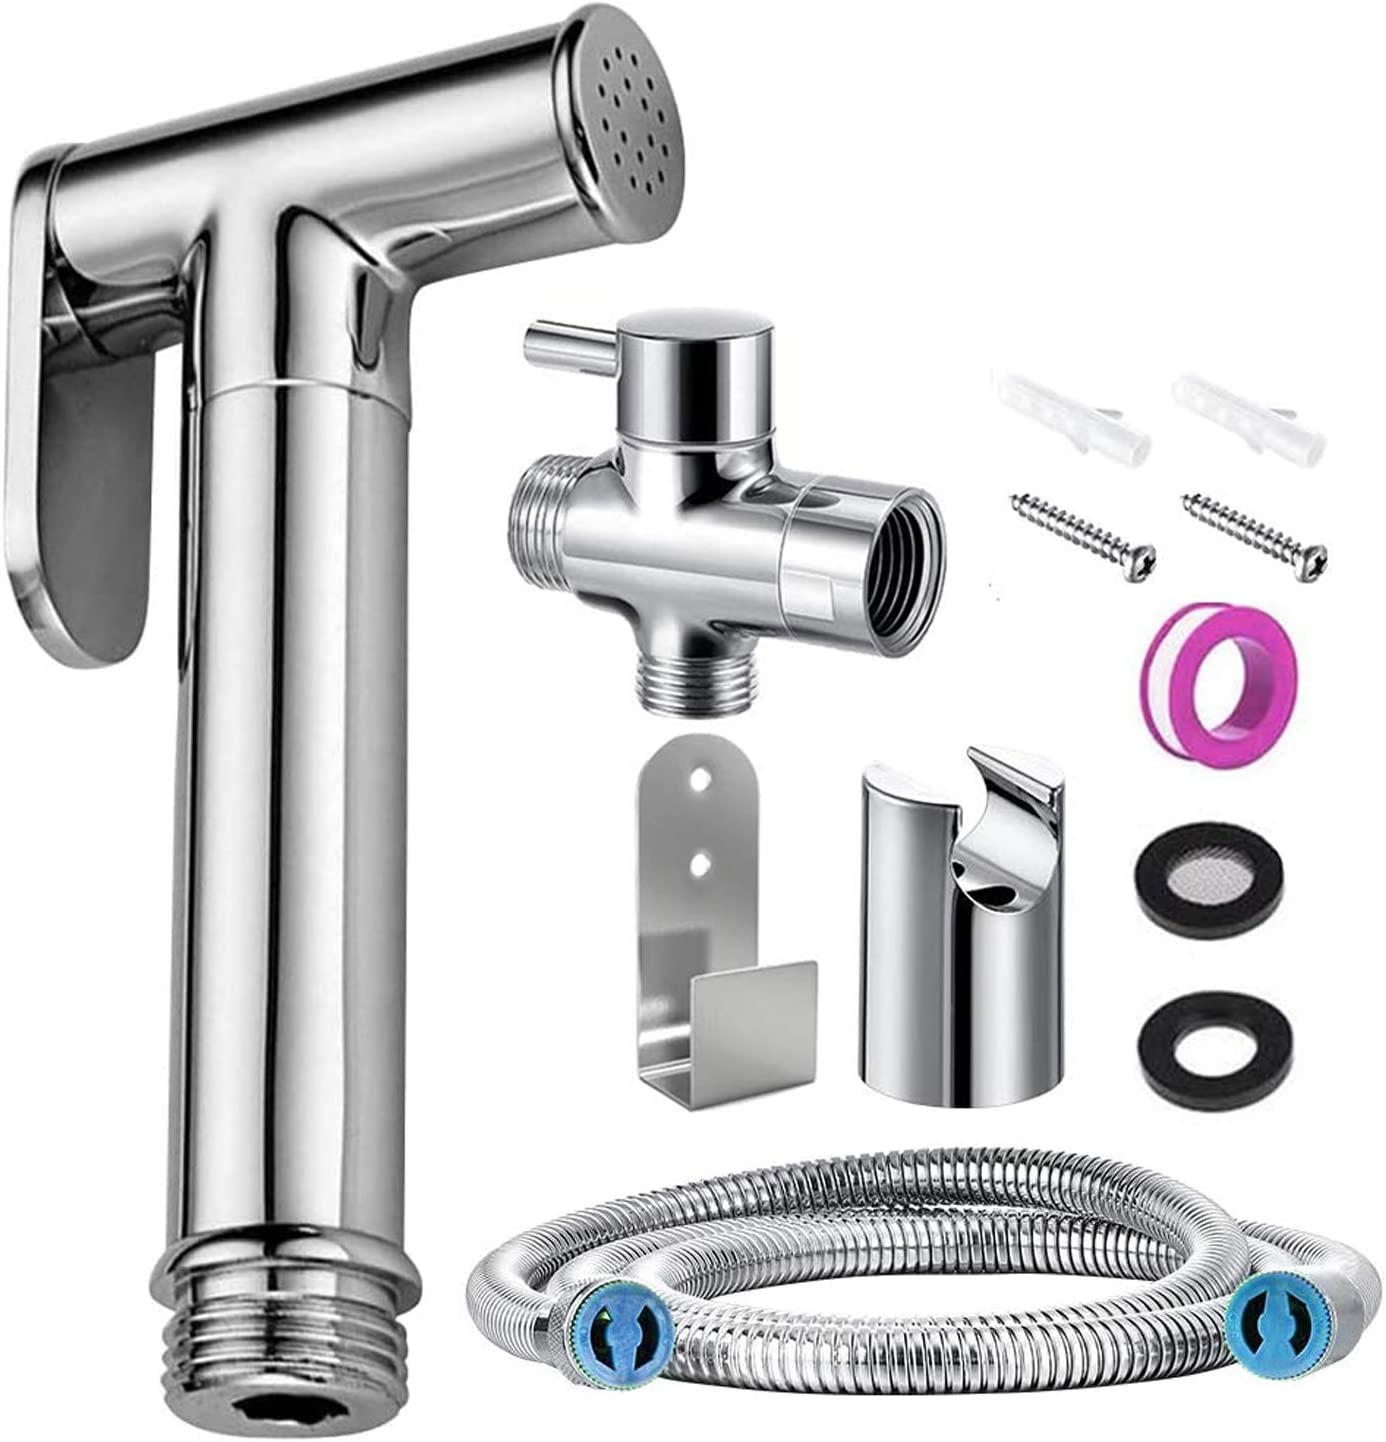 Handheld Bidet Sprayer Bidet Accessories Toilet Stainless Steel Shower Attachment For Bathroom Sink Or Toilet